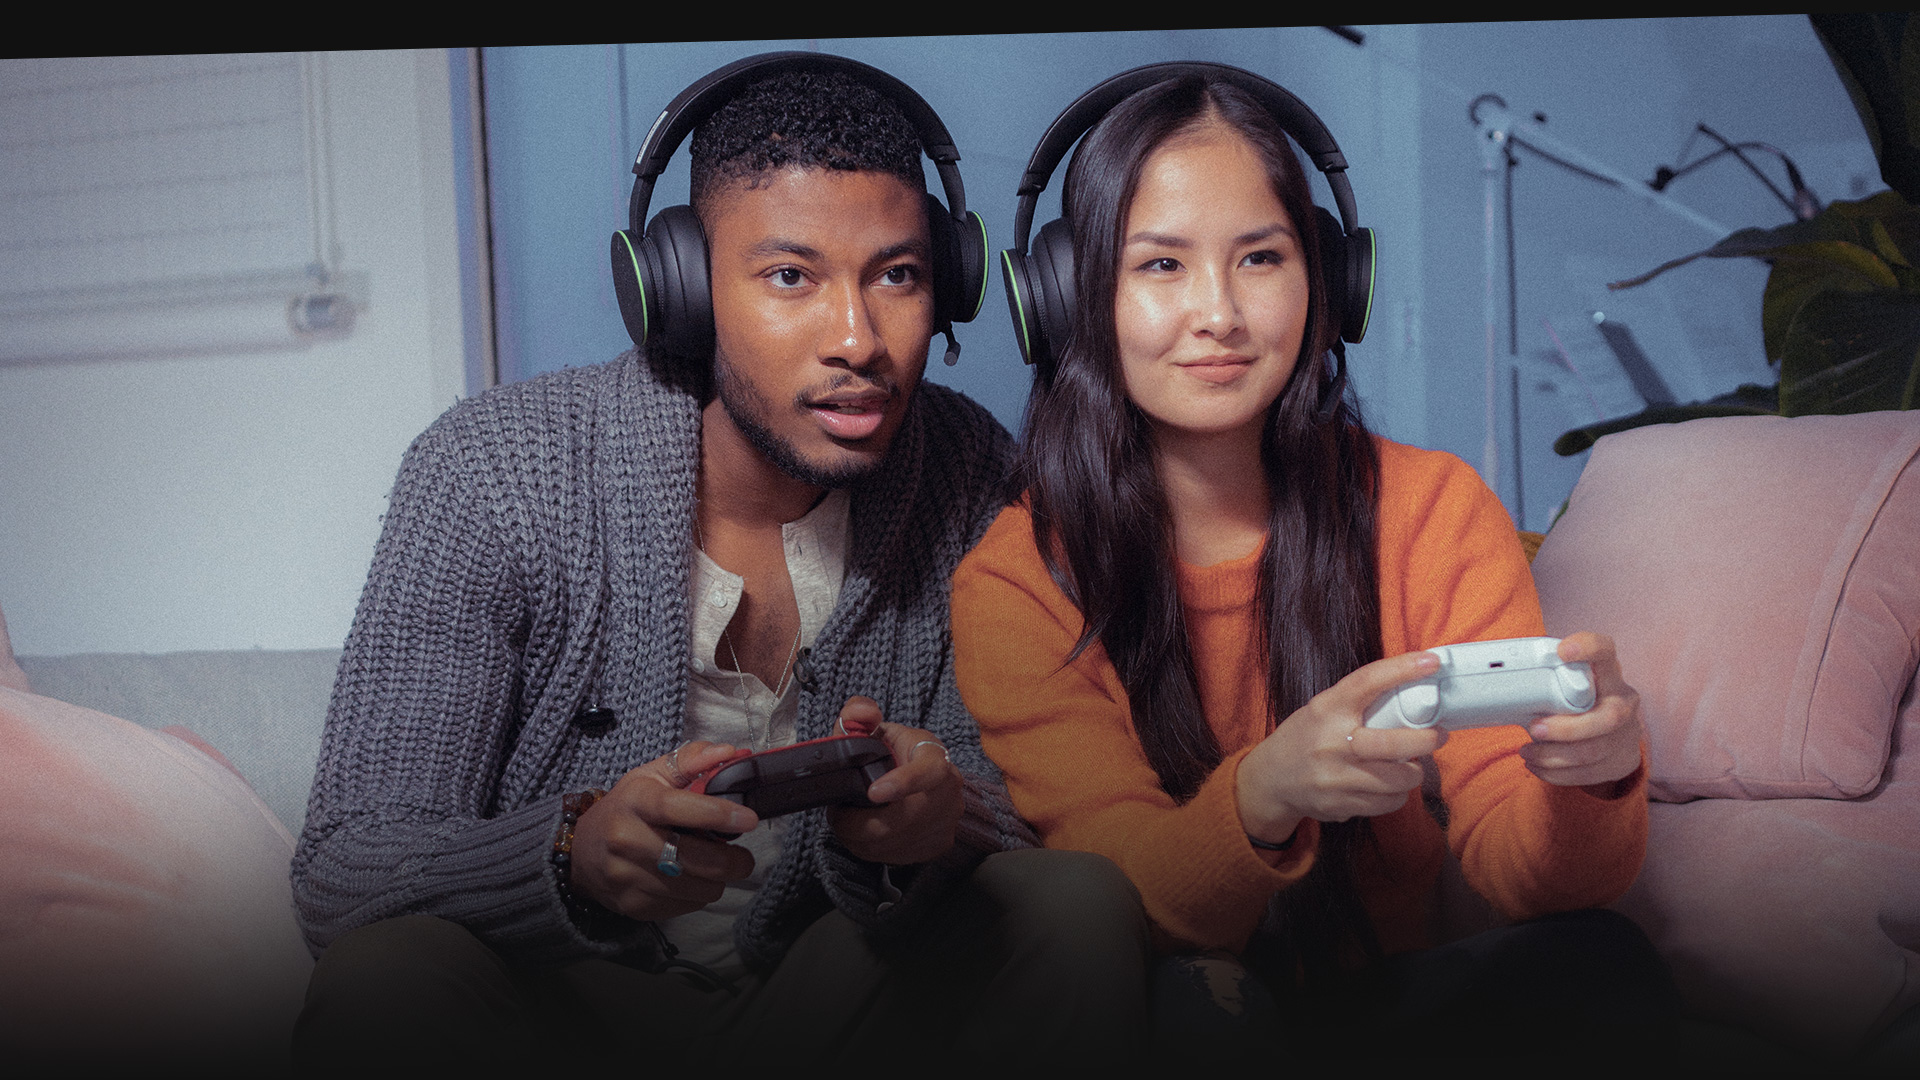 Two people wearing headsets playing Xbox one on a couch